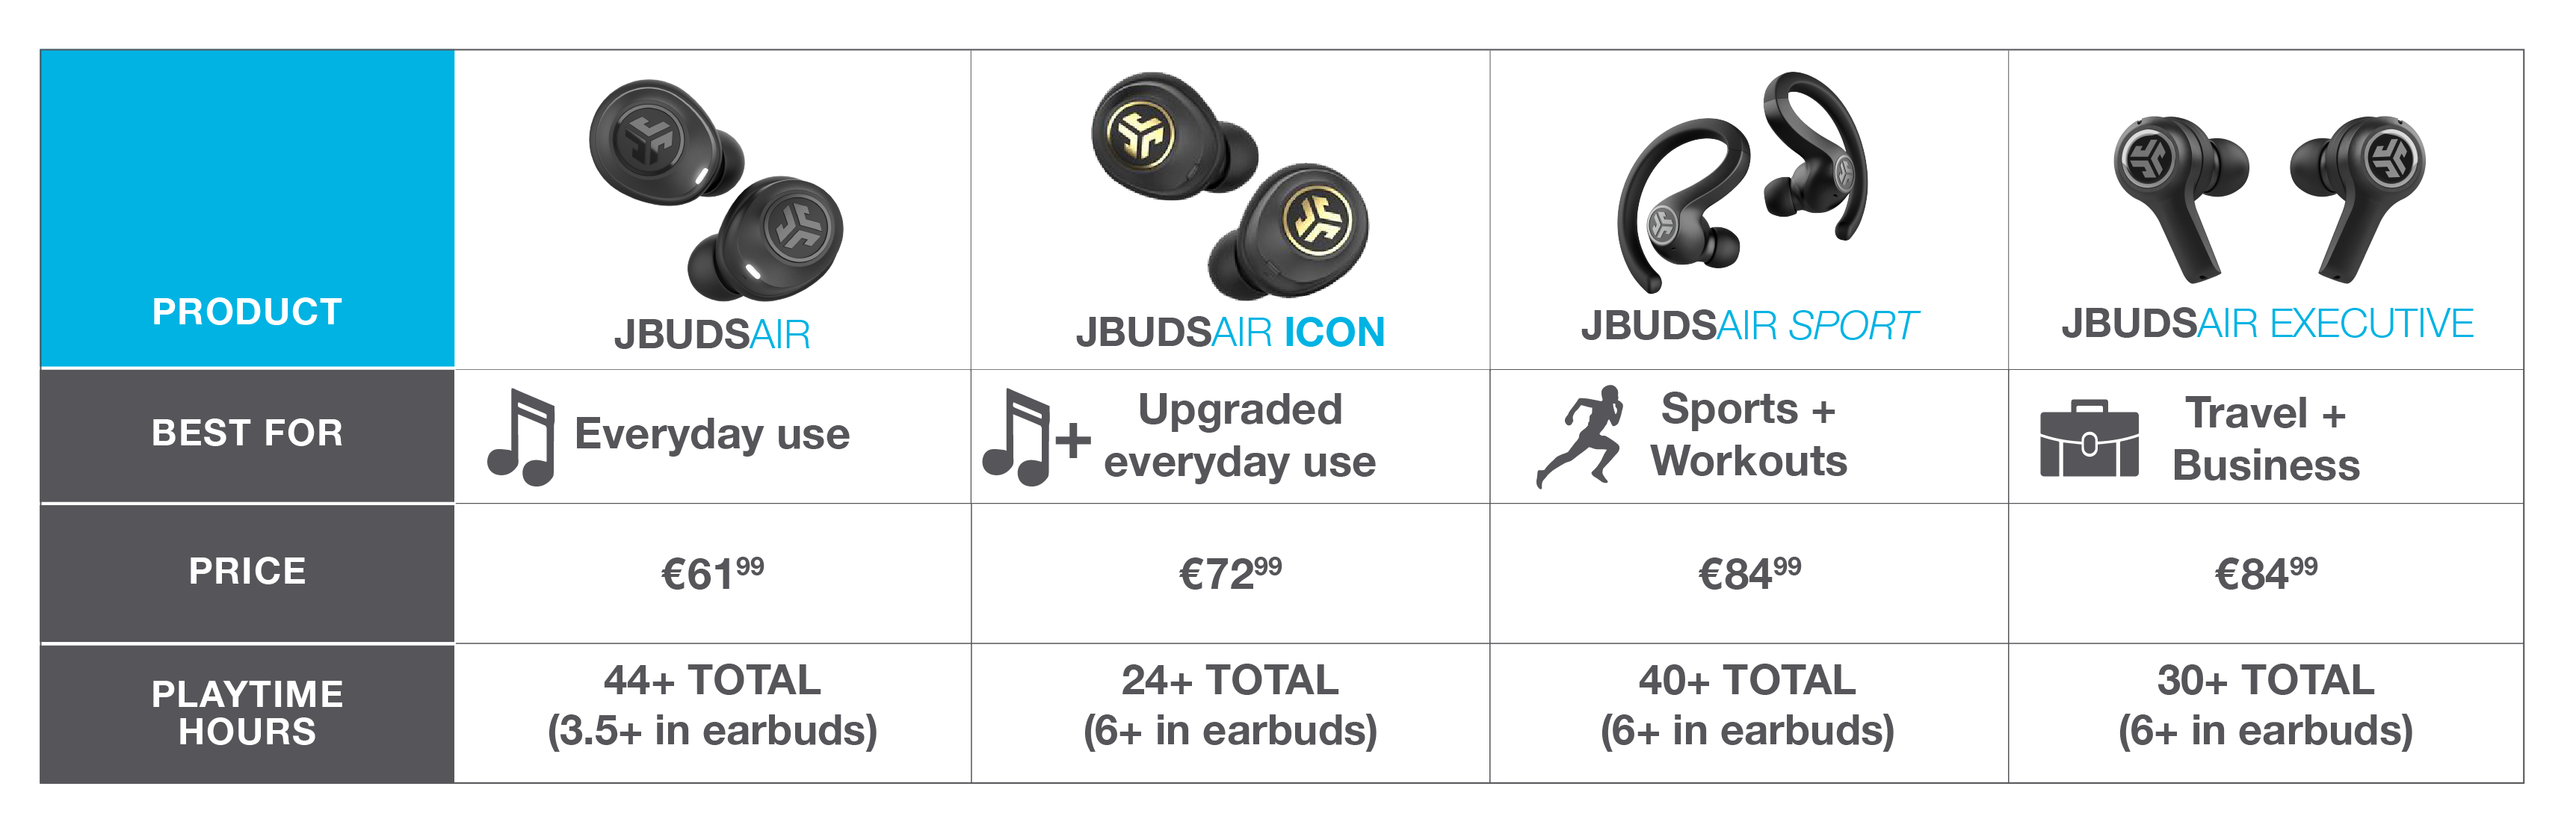 Confronto di True Wireless famiglia. JBuds Air per l'uso quotidiano. JBuds Air Icon per un uso quotidiano aggiornato. JBuds Air Executive per affari e viaggi. JBuds Air Sport per lo sport e l'allenamento. Acquista sotto.